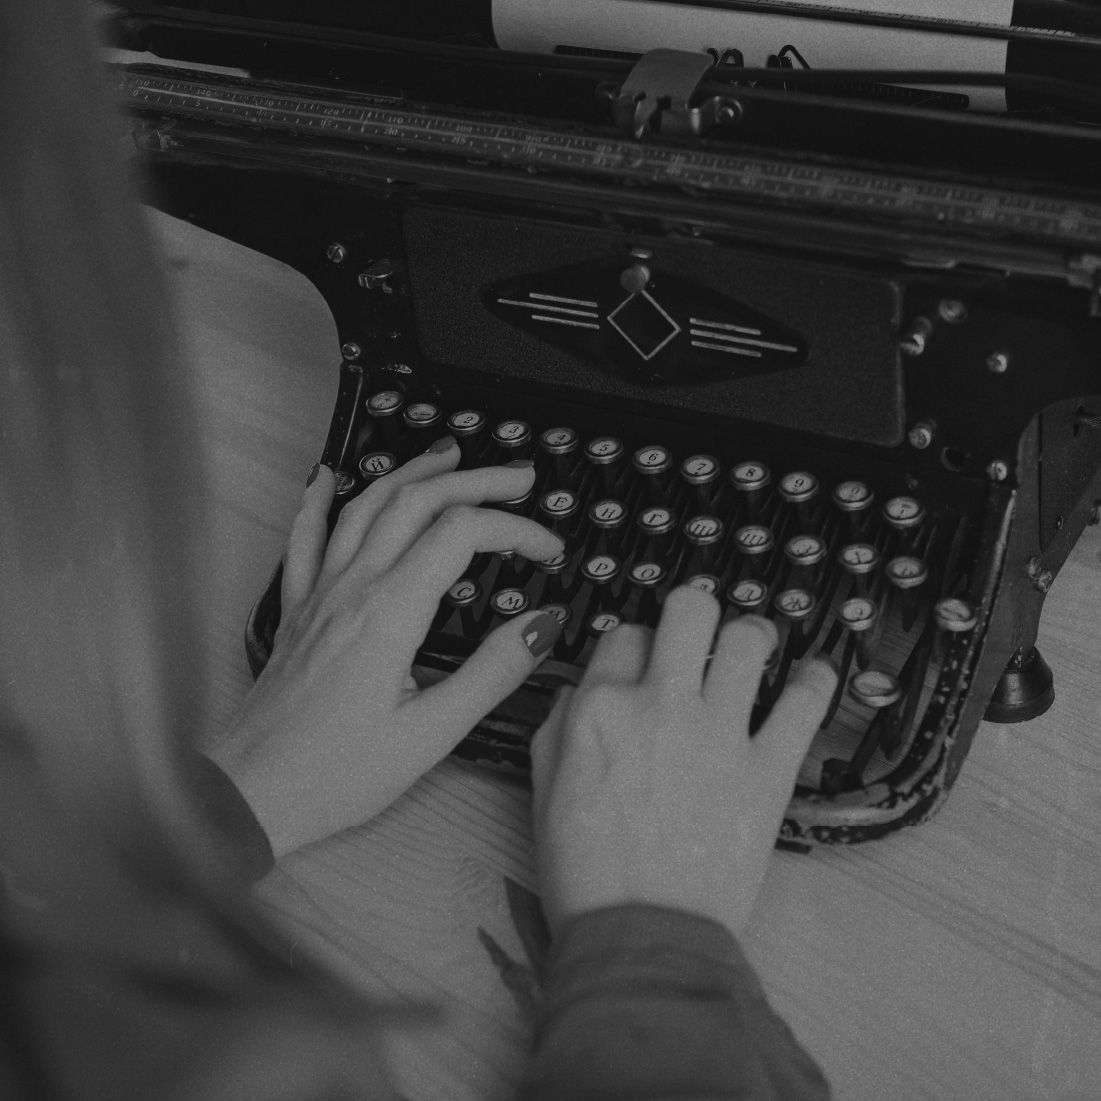 A woman typing a letter on a typewriter.